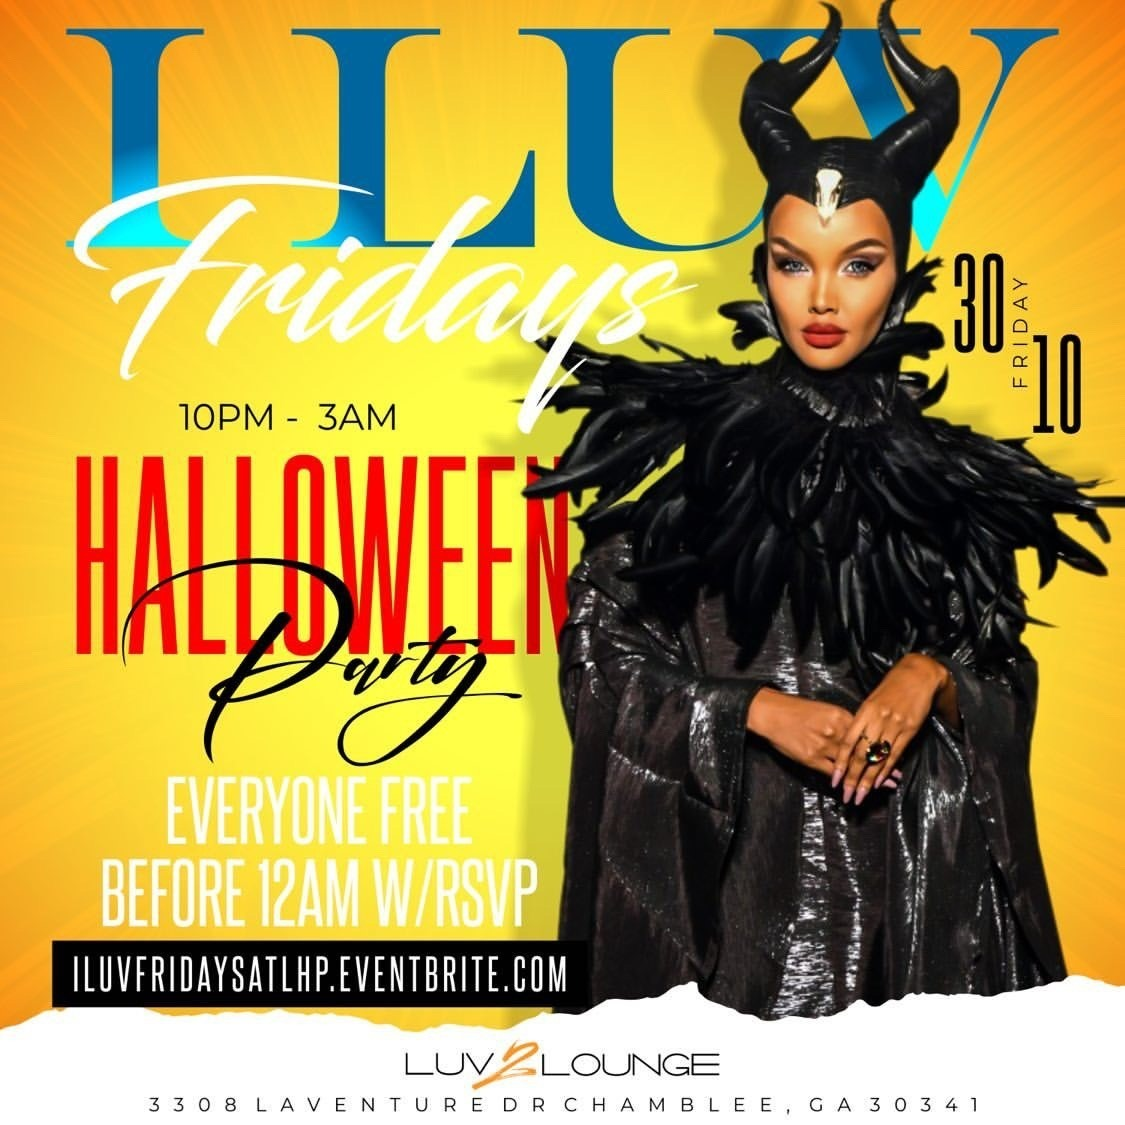 Halloween Costume Events 2020 Atlanta I LUV FRIDAYS Atlanta Halloween Party 2020 | No Cover before 12am